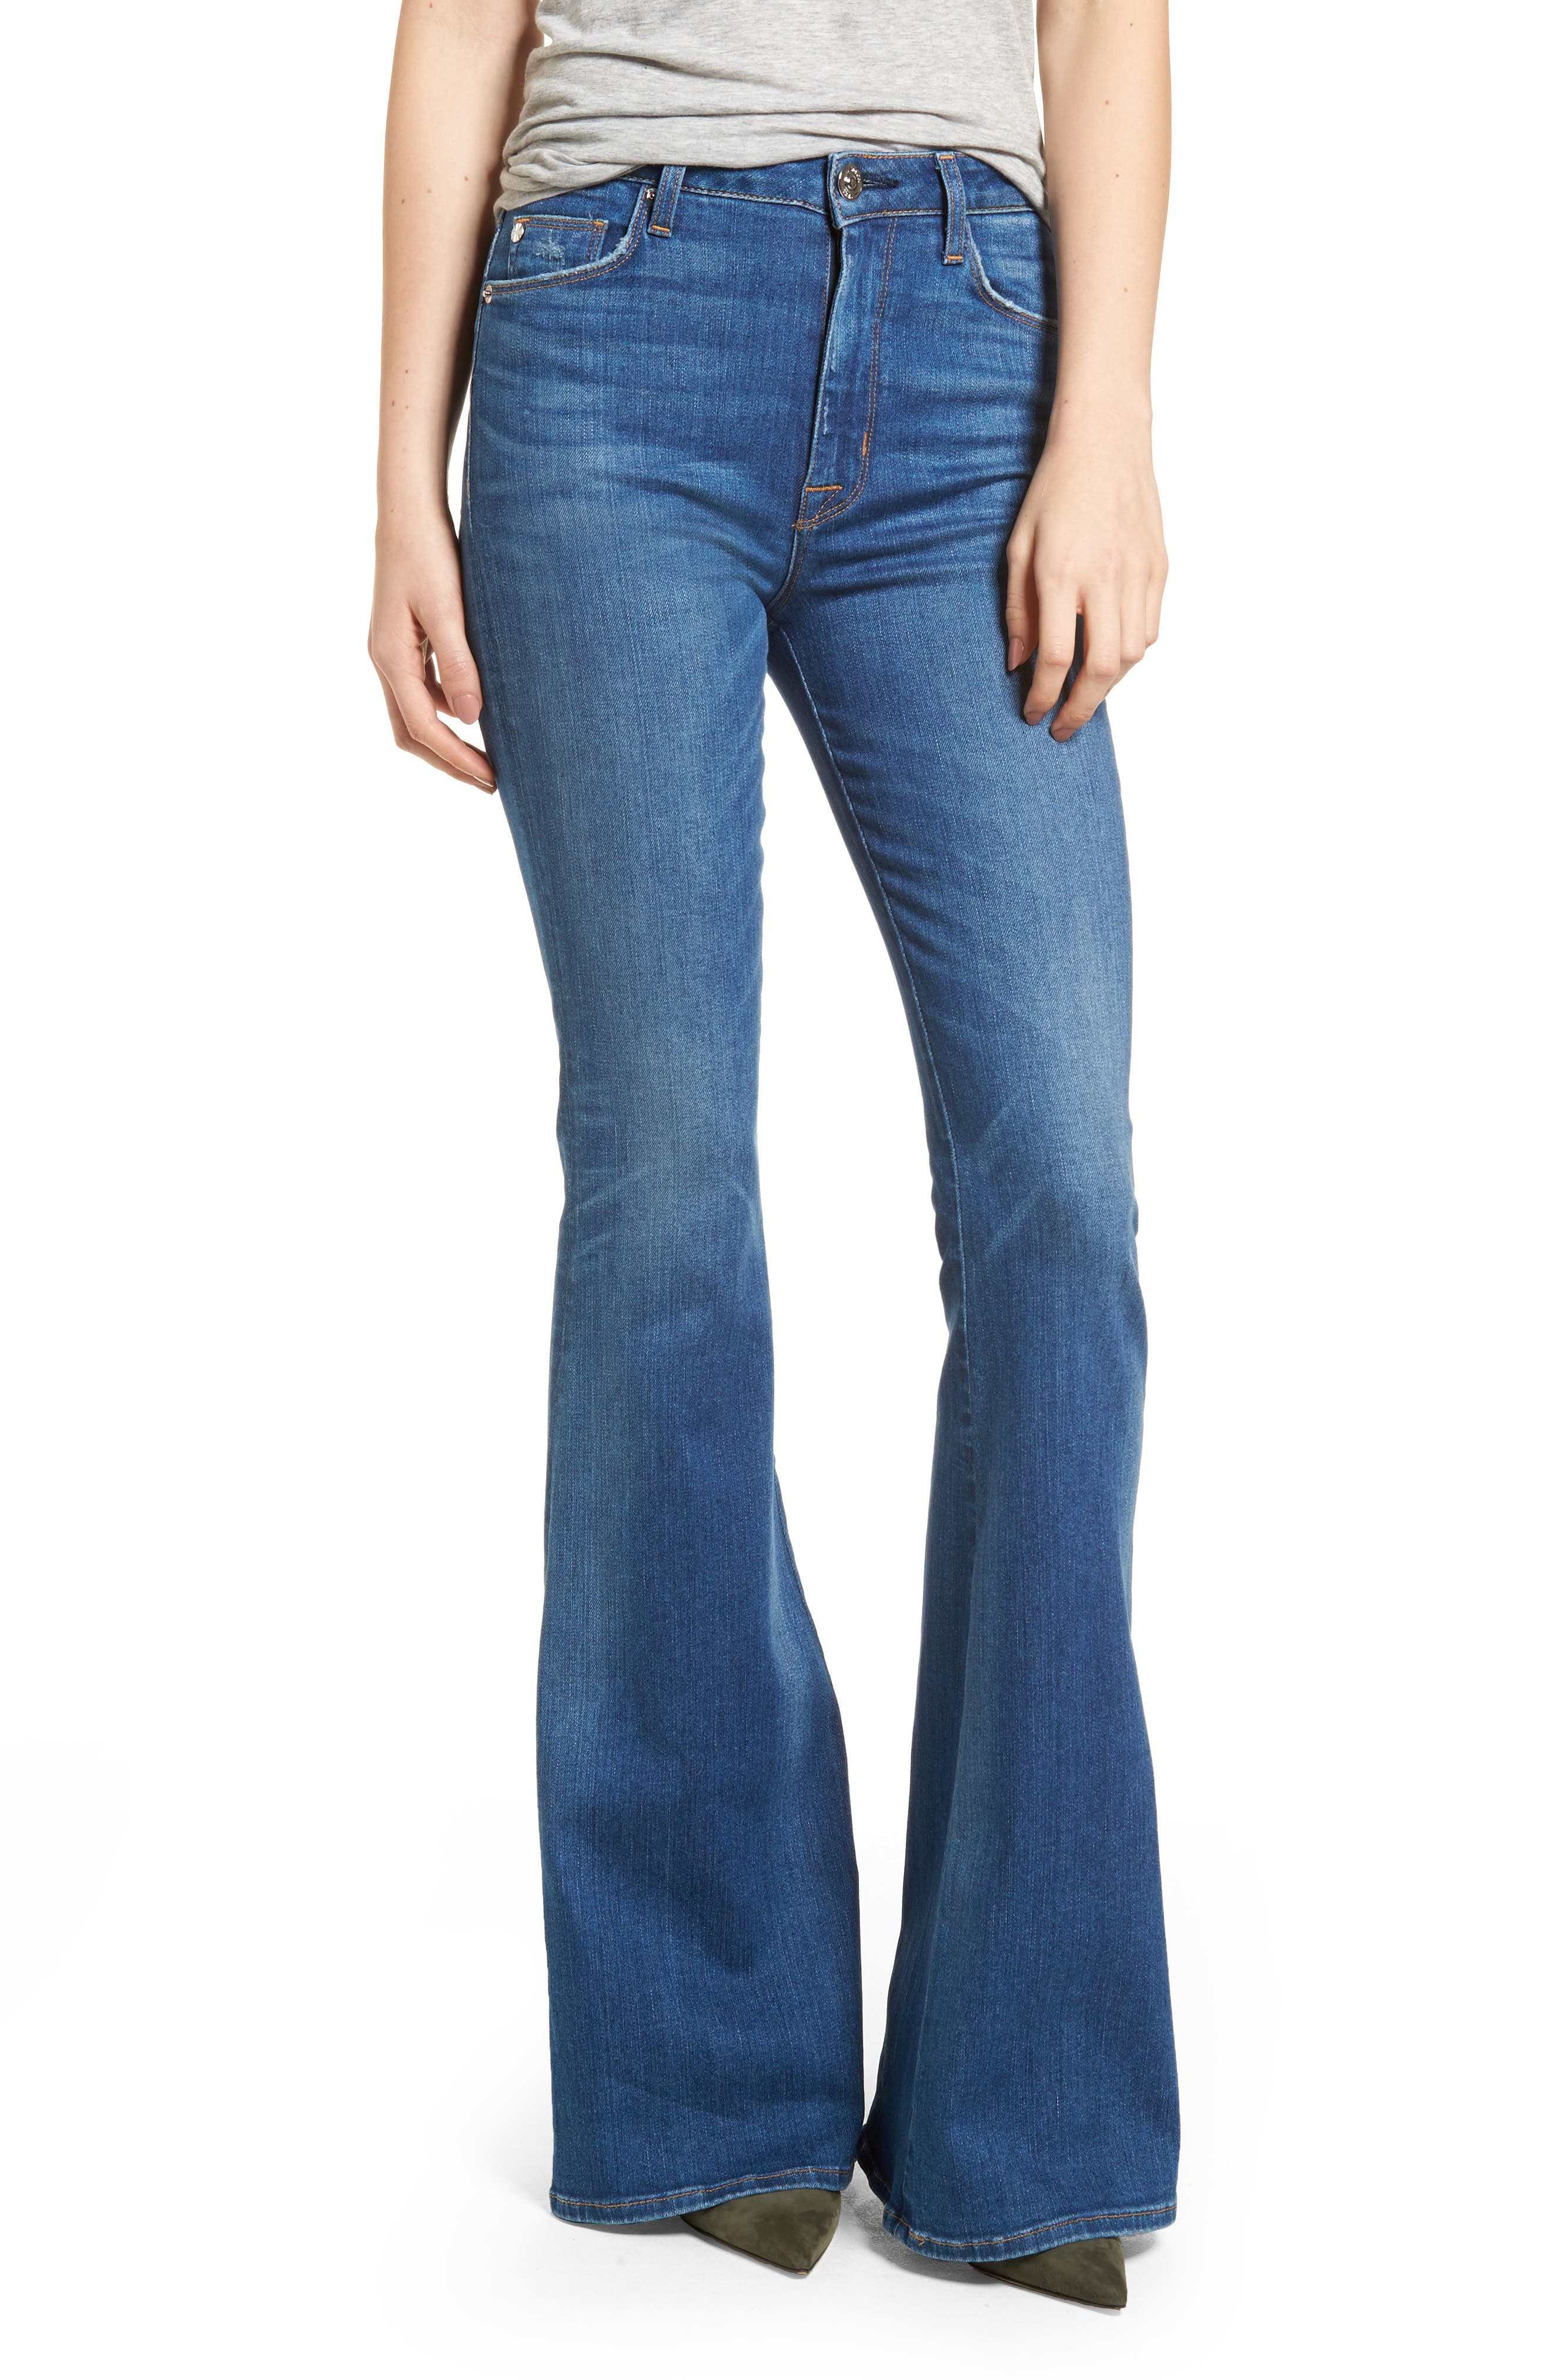 Alternate Image 1 Selected - Hudson Jeans Holly High Waist Flare Jeans (Rogue)